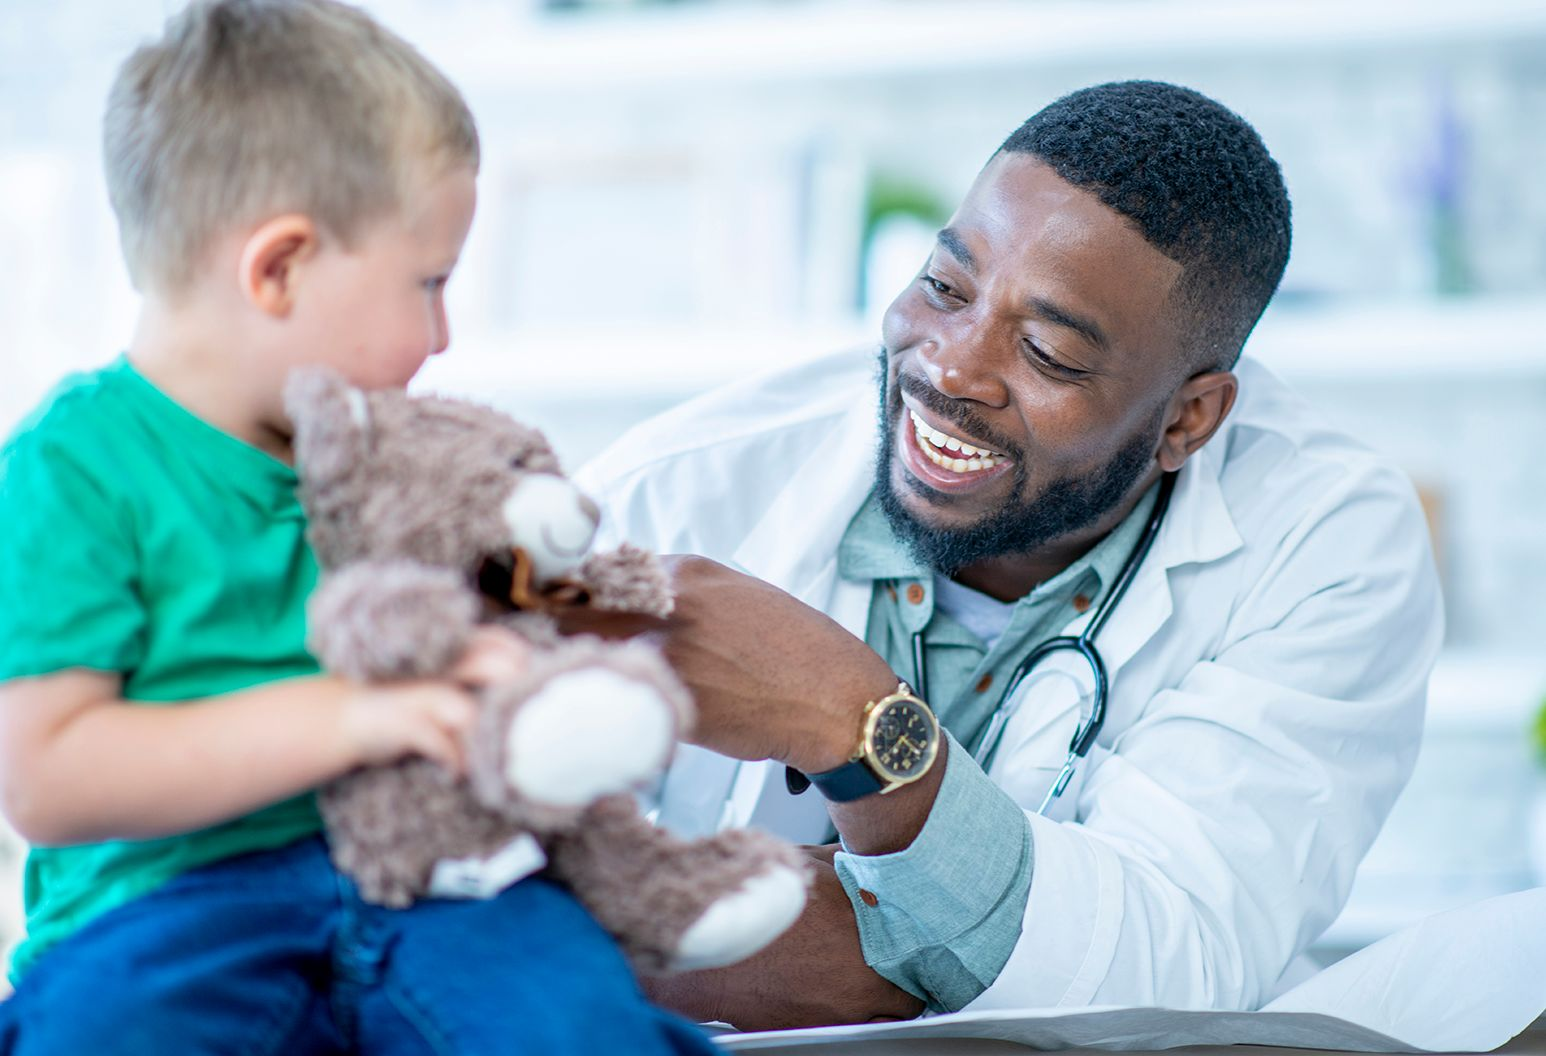 A young boy and his doctor are indoors in a hospital. The boy is holding a teddy bear and smiling while talking to his doctor.